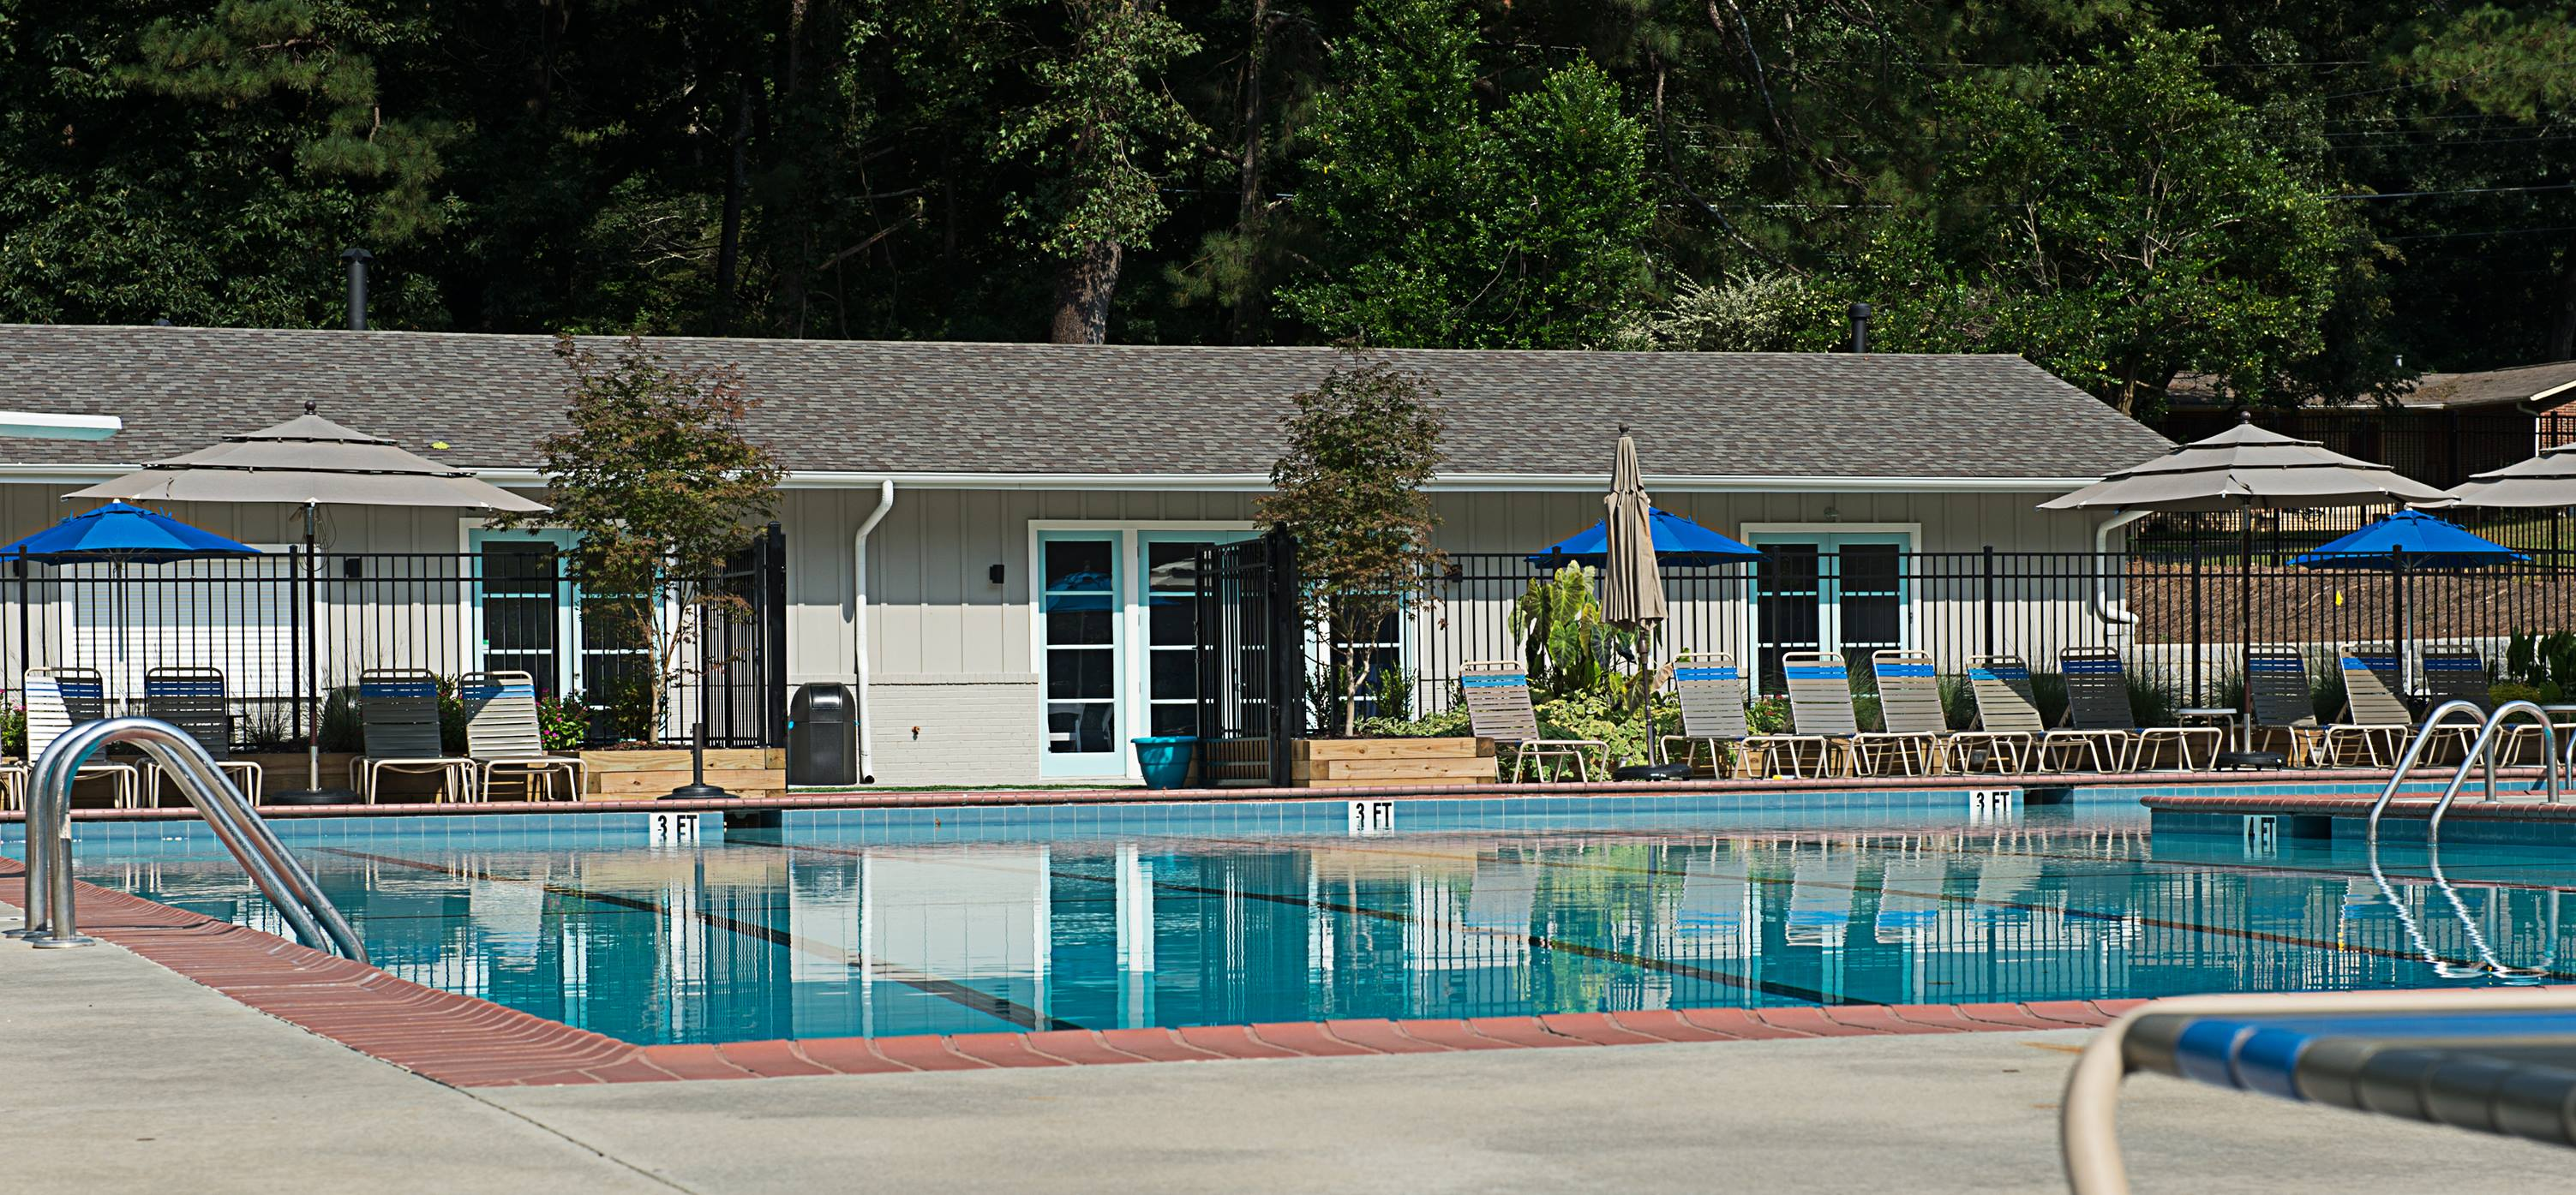 Tips for Renovating Your Community Pool